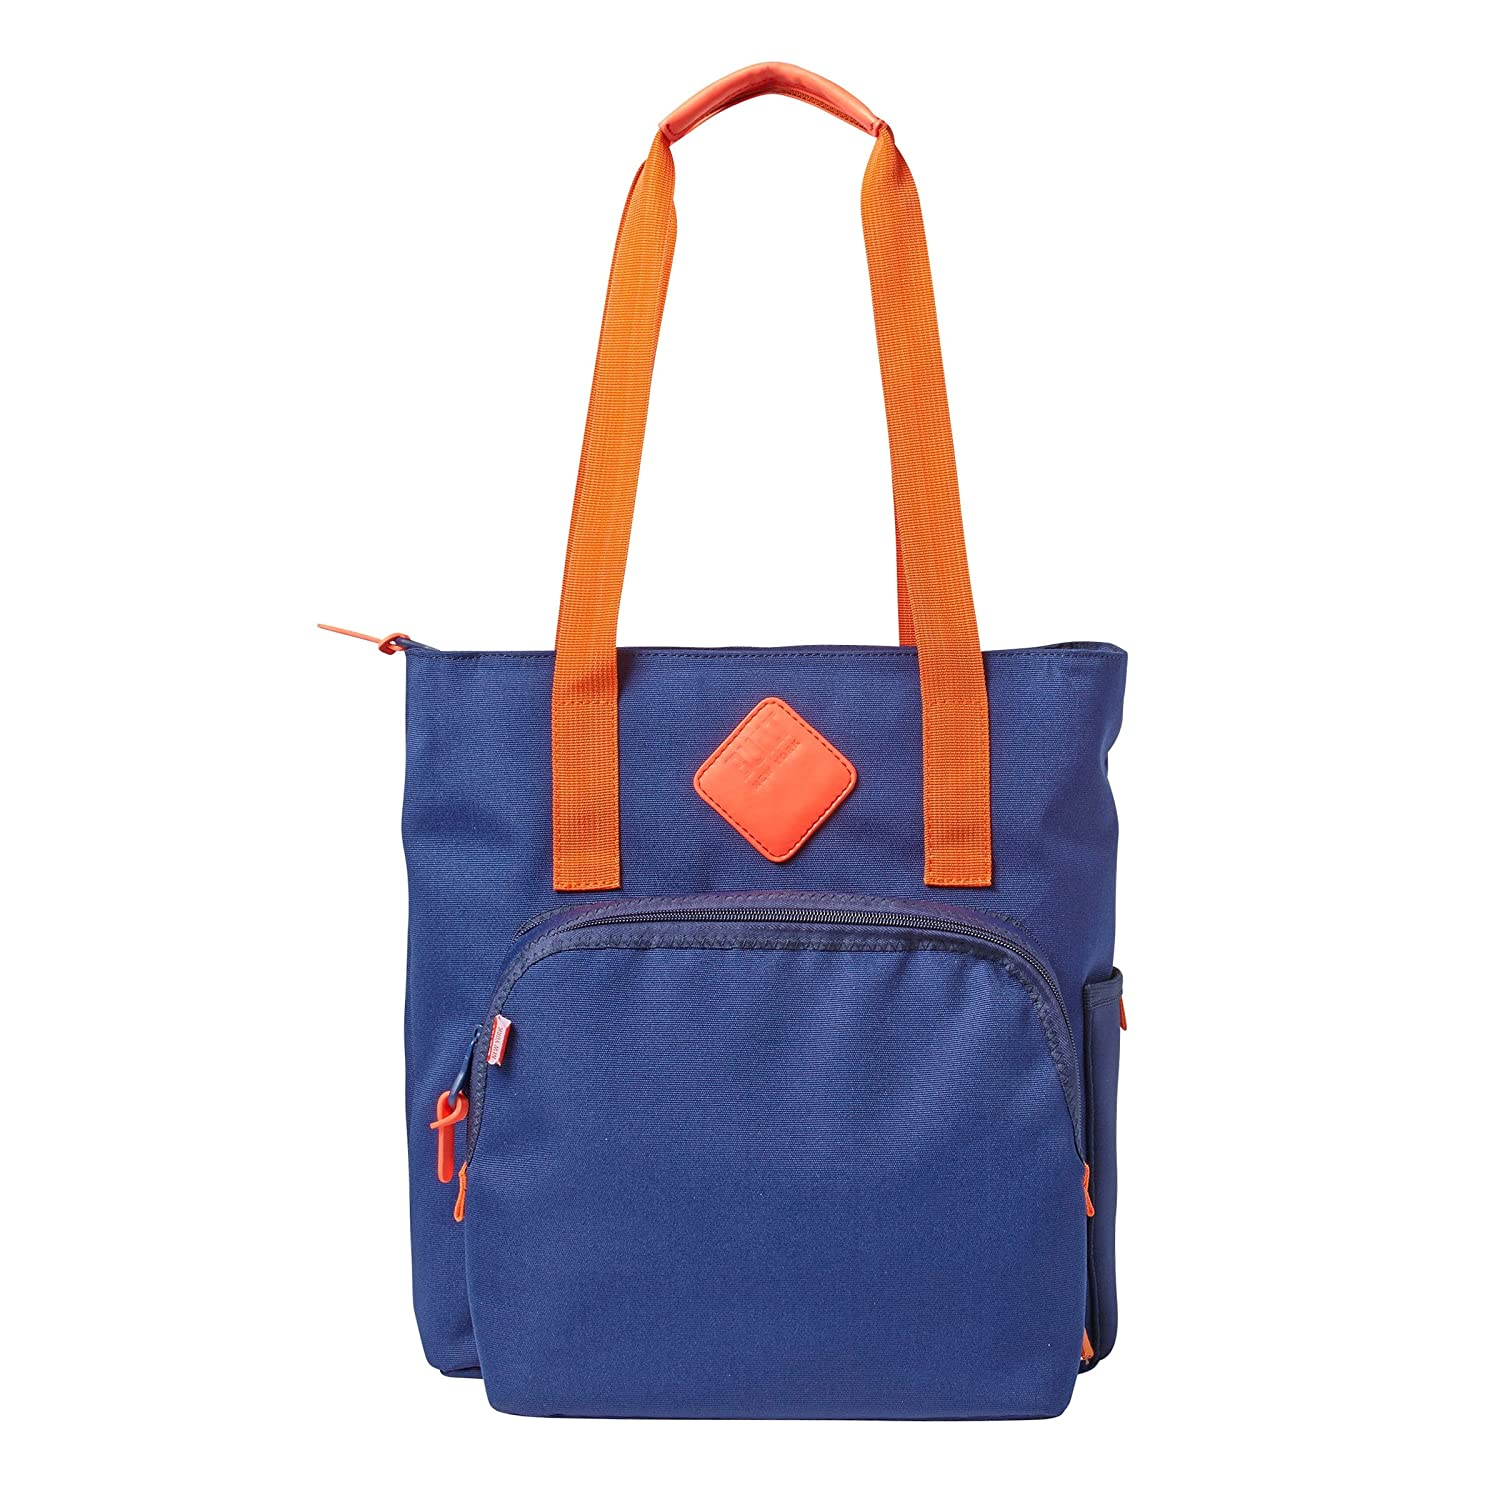 bc6c8c0b29ad Amazon.com  BUILT NY Lunchpack Collection Verdi Tote Bag with Removable  Insulated Lunch Bag